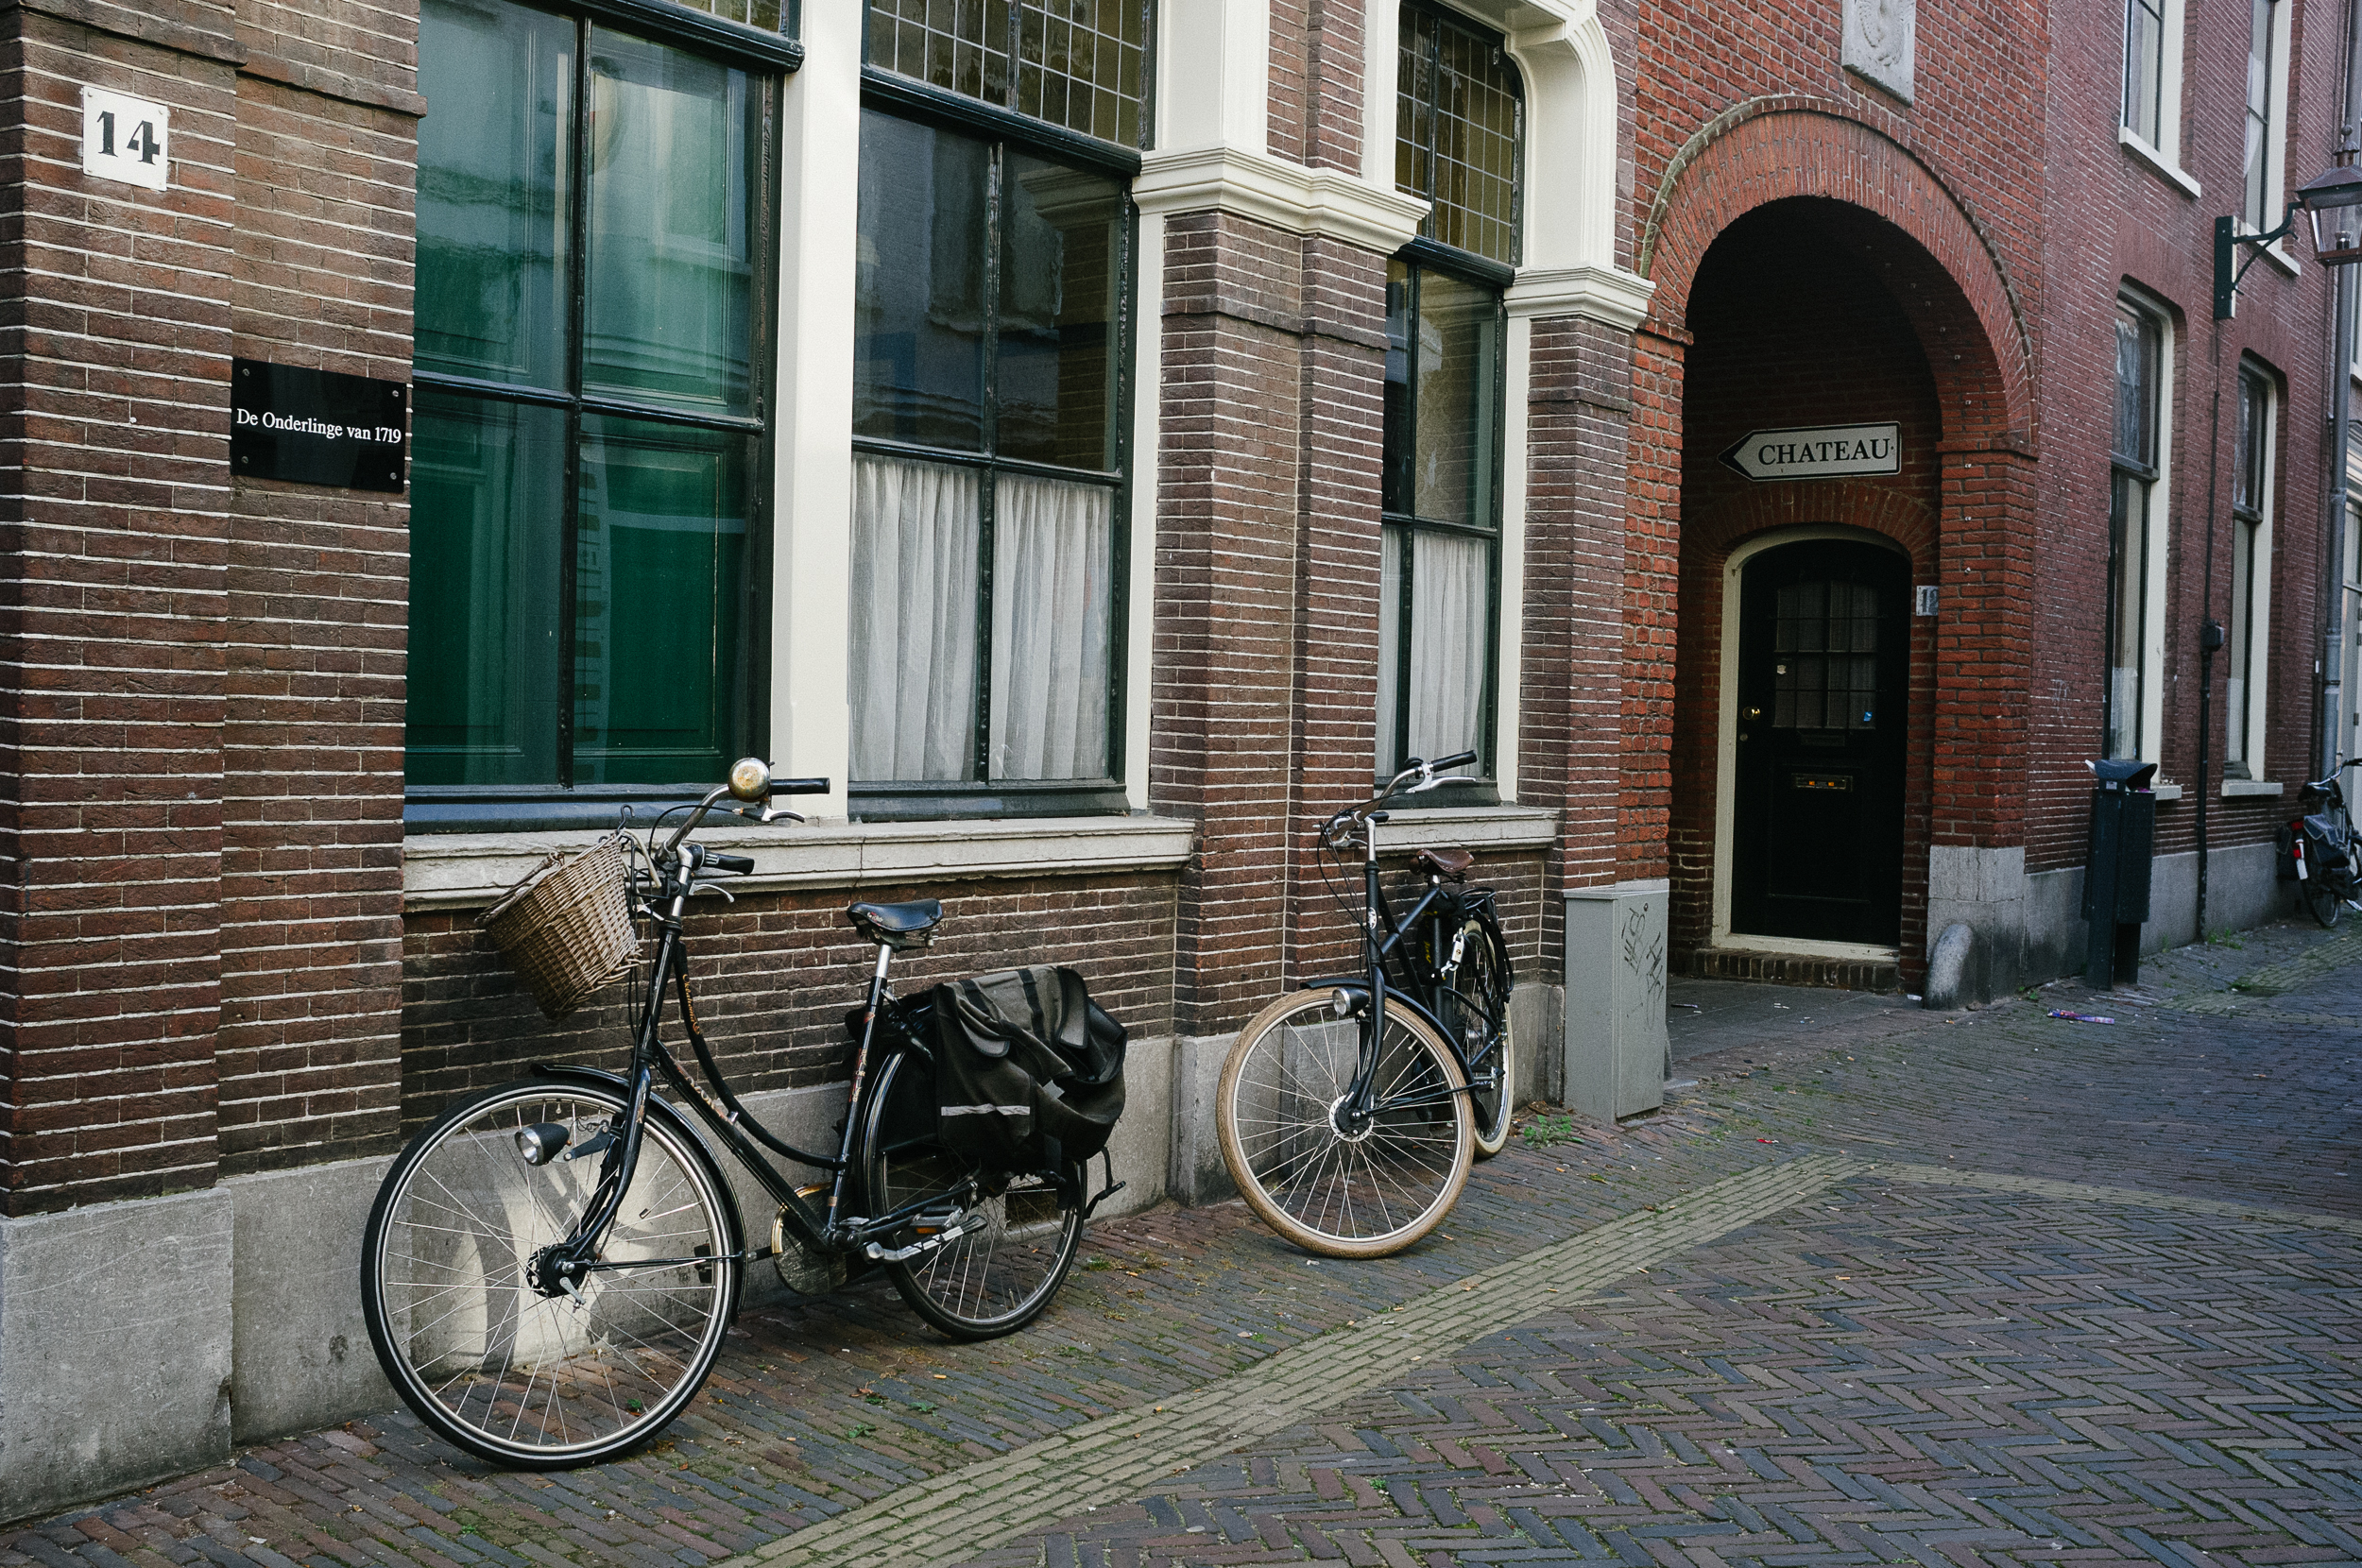 So many bikes in Haarlem.Photo taken with Fuji X100S, edited with VSCO.